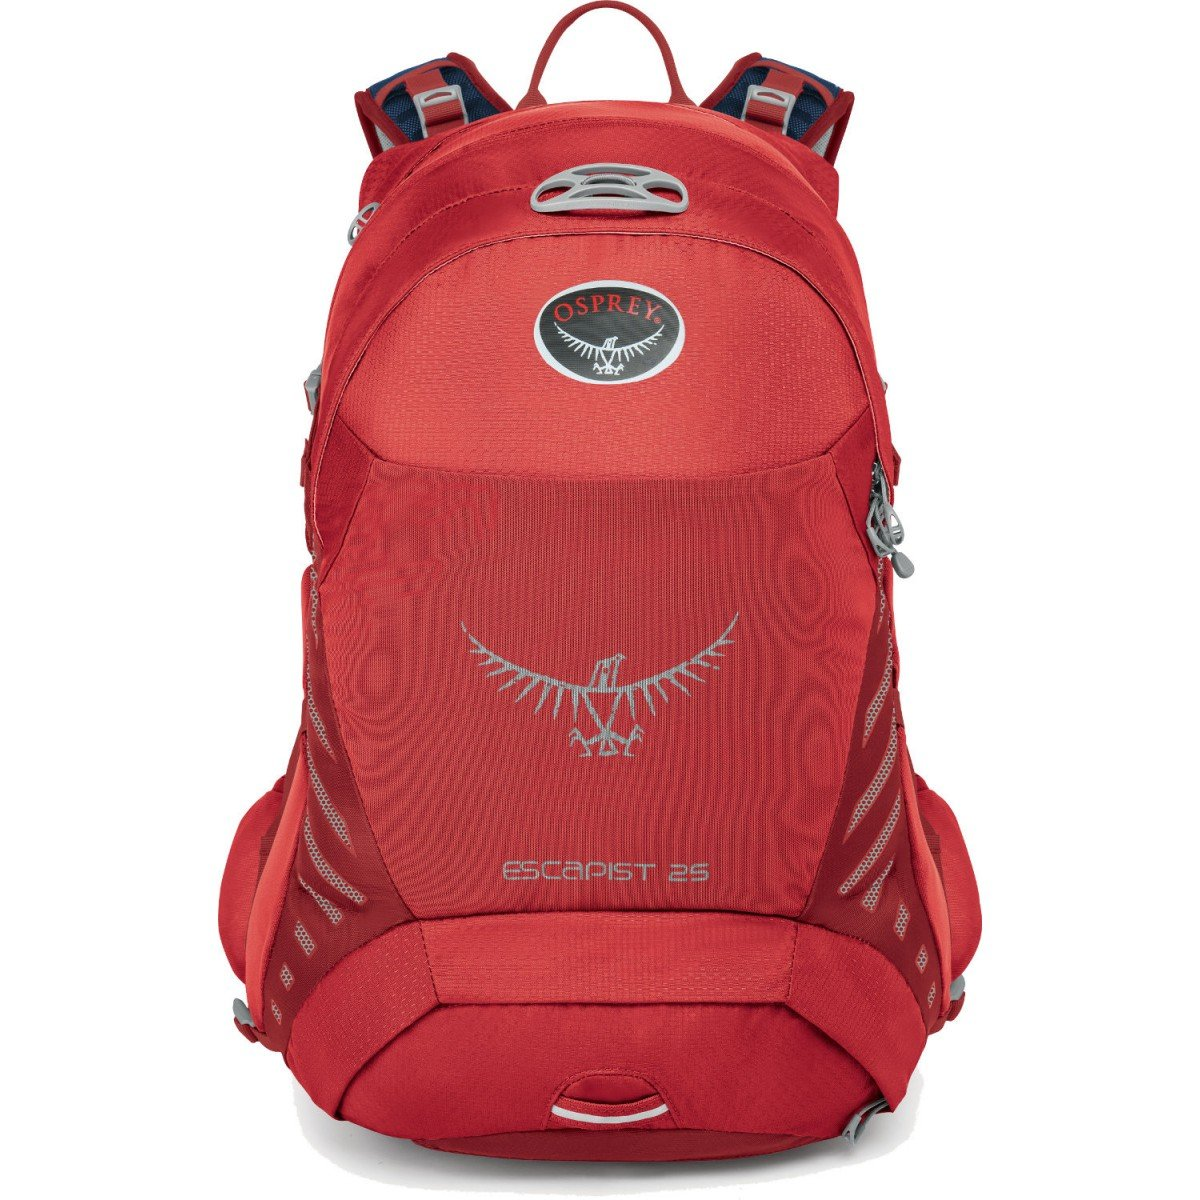 Рюкзак Osprey Escapist 25 Cayenne Red Daylite Plus 20 2 009.0272